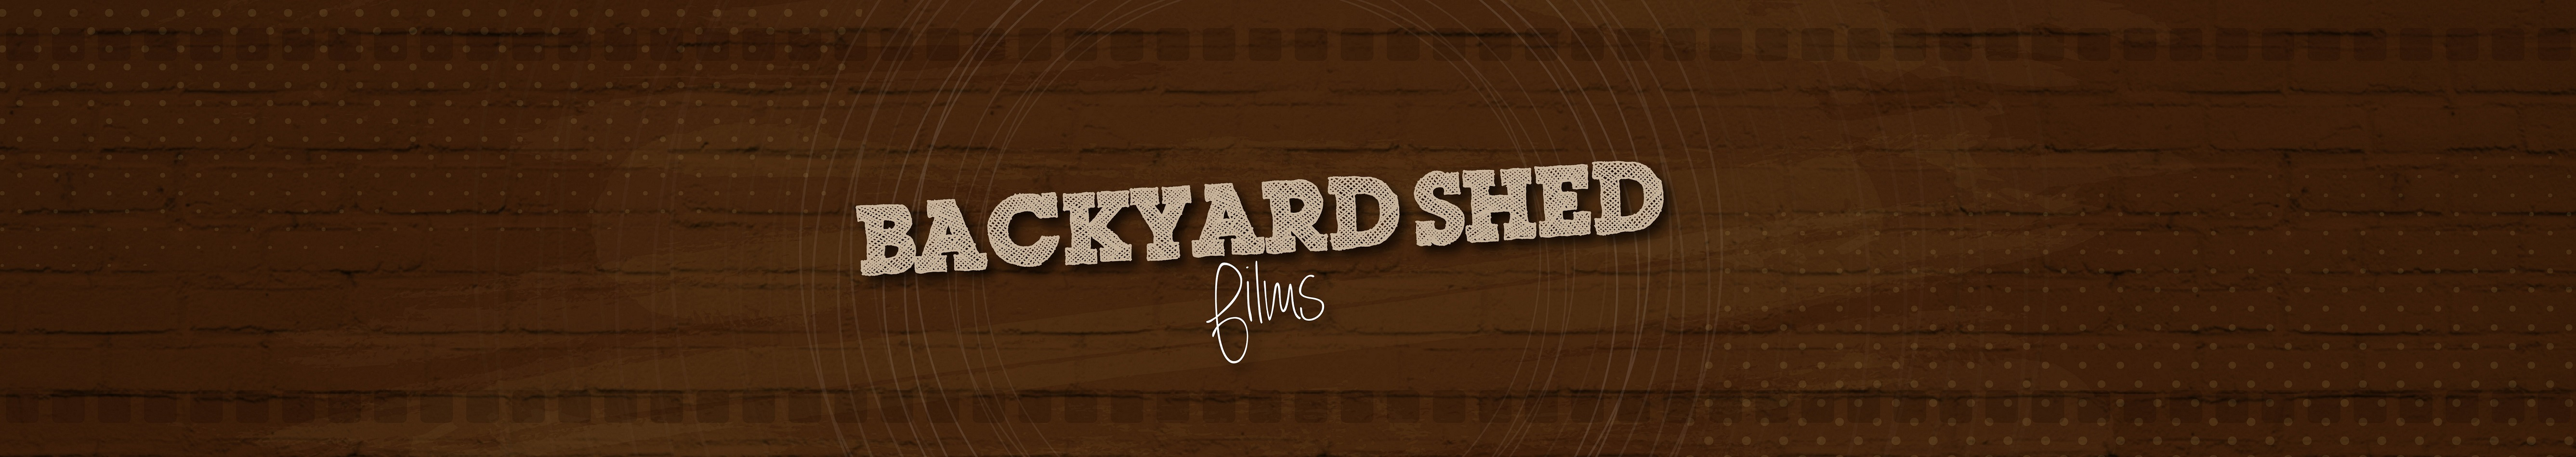 Homepage Video Slider | Backyard Shed Films